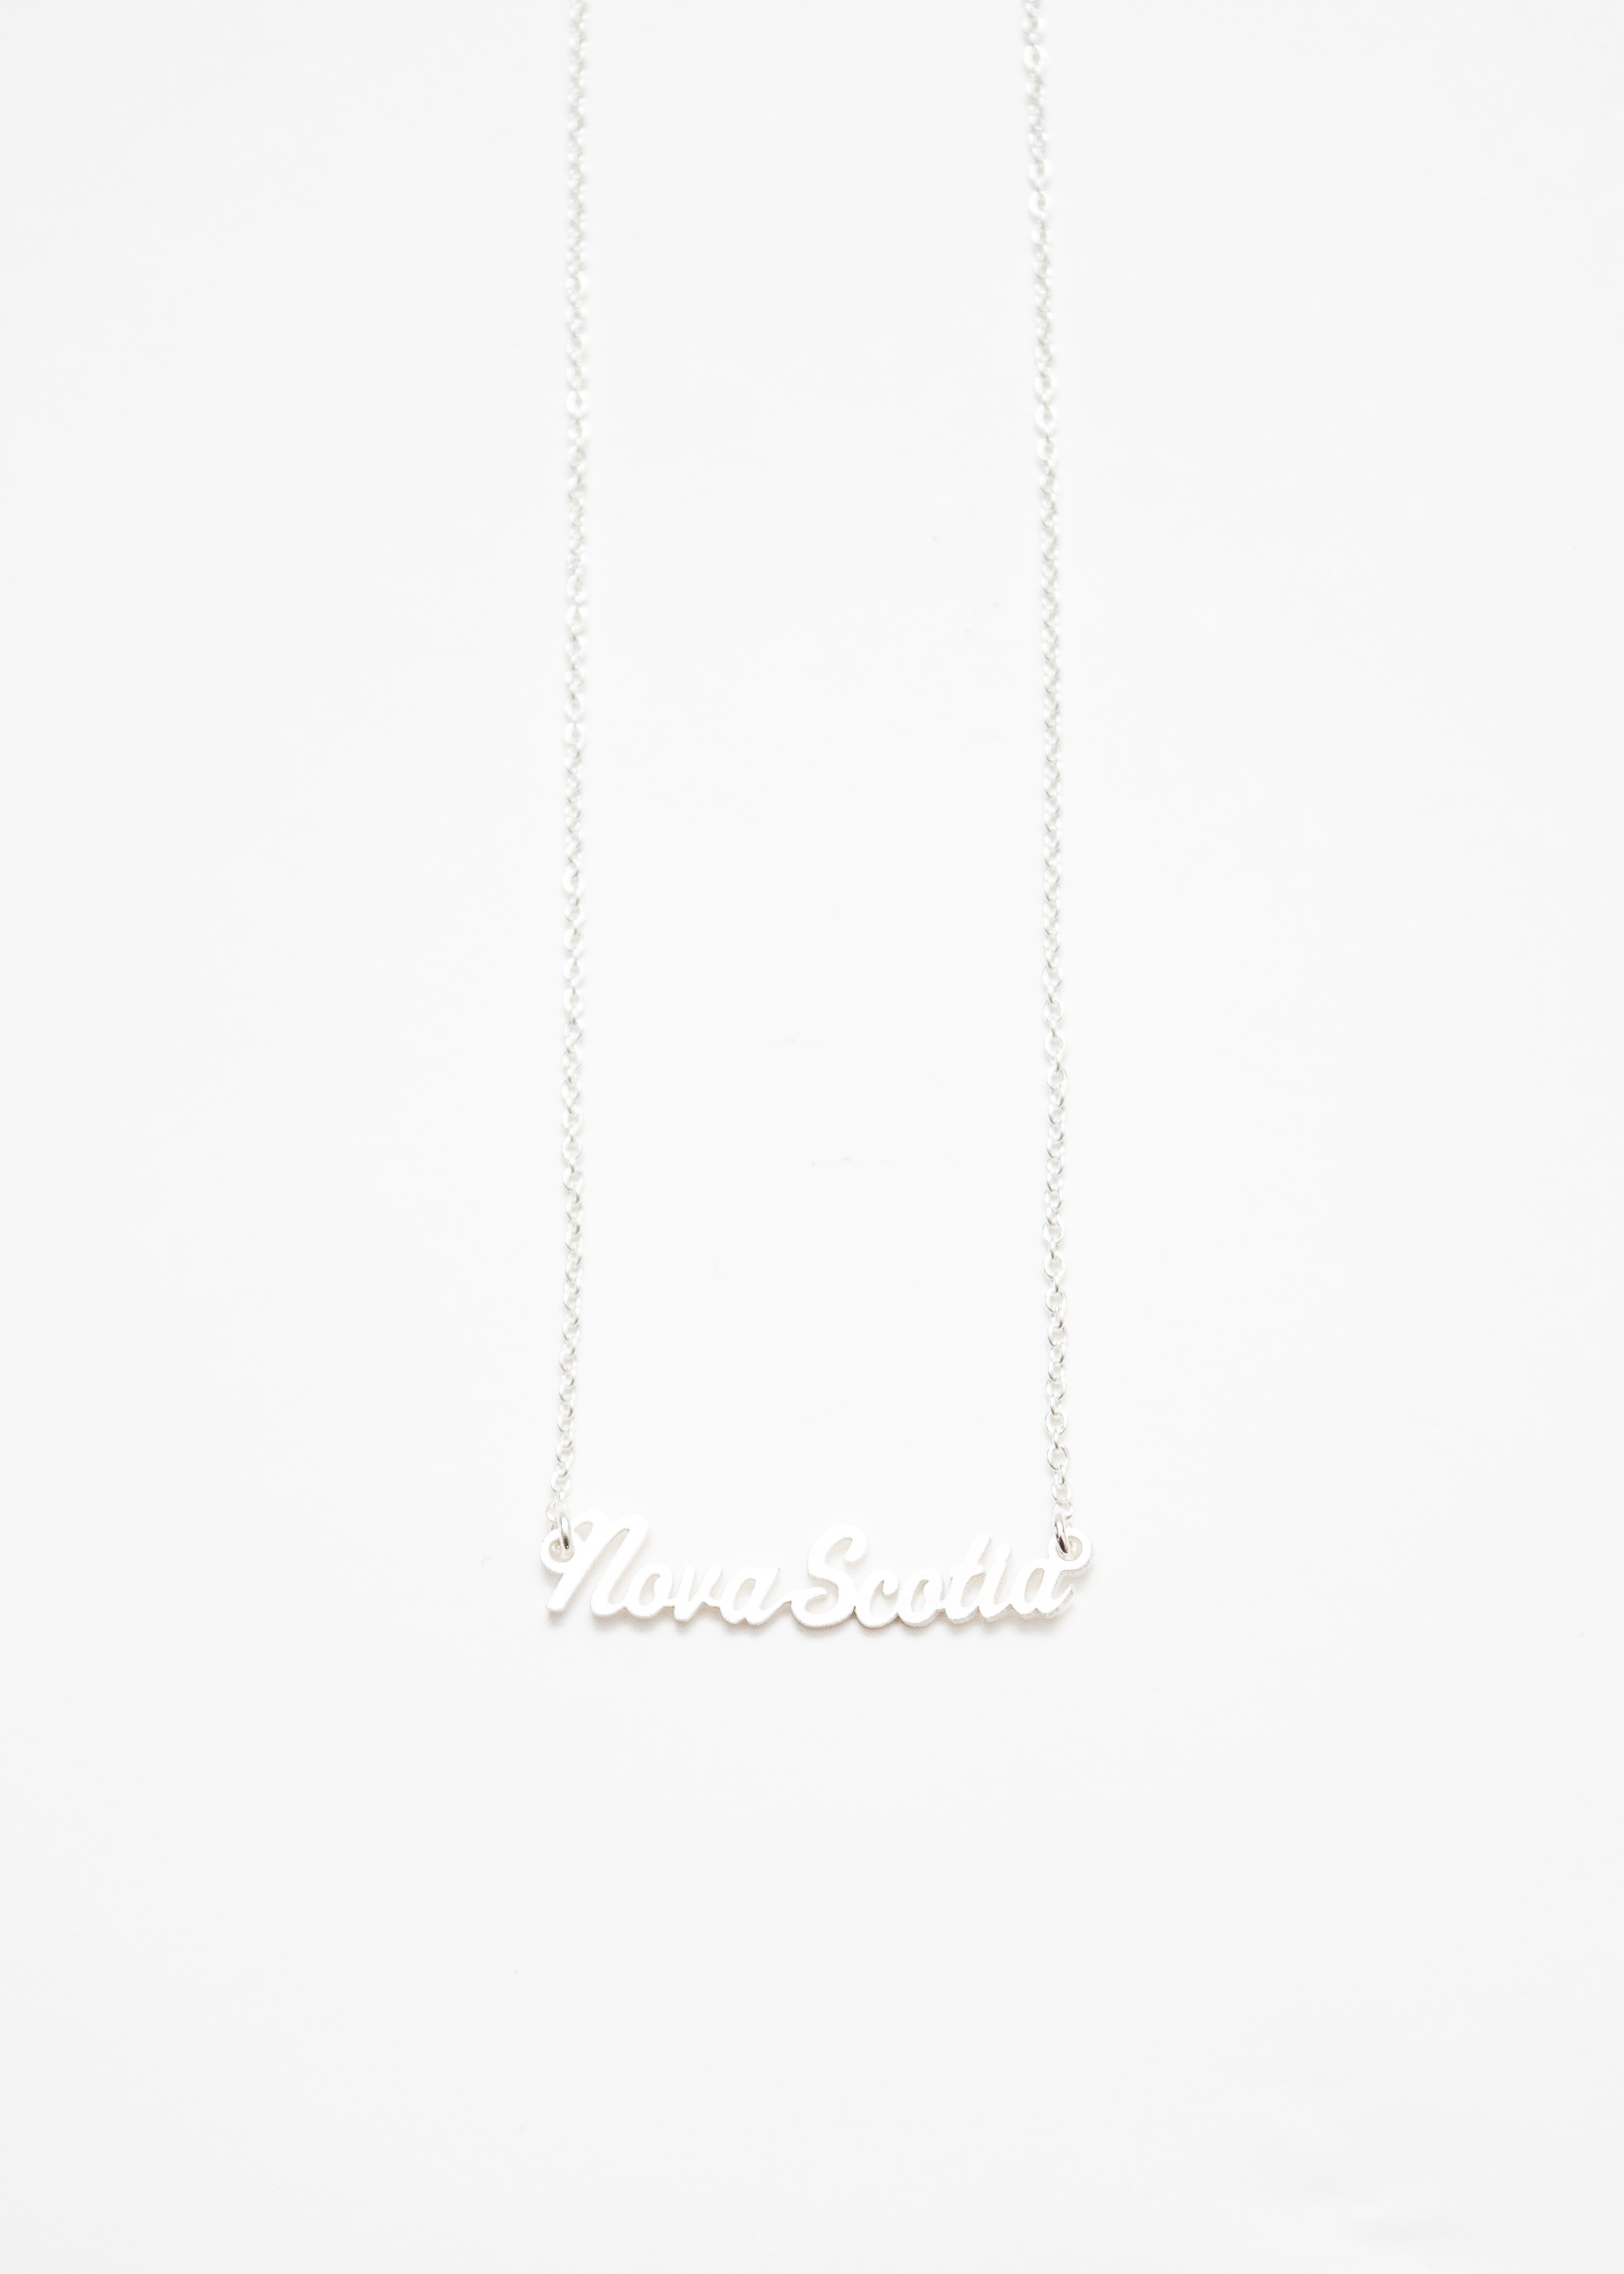 Beck & Boosh Nova Scotia Script Short Necklace Scrolled Nova Scotia Script Plated Silver